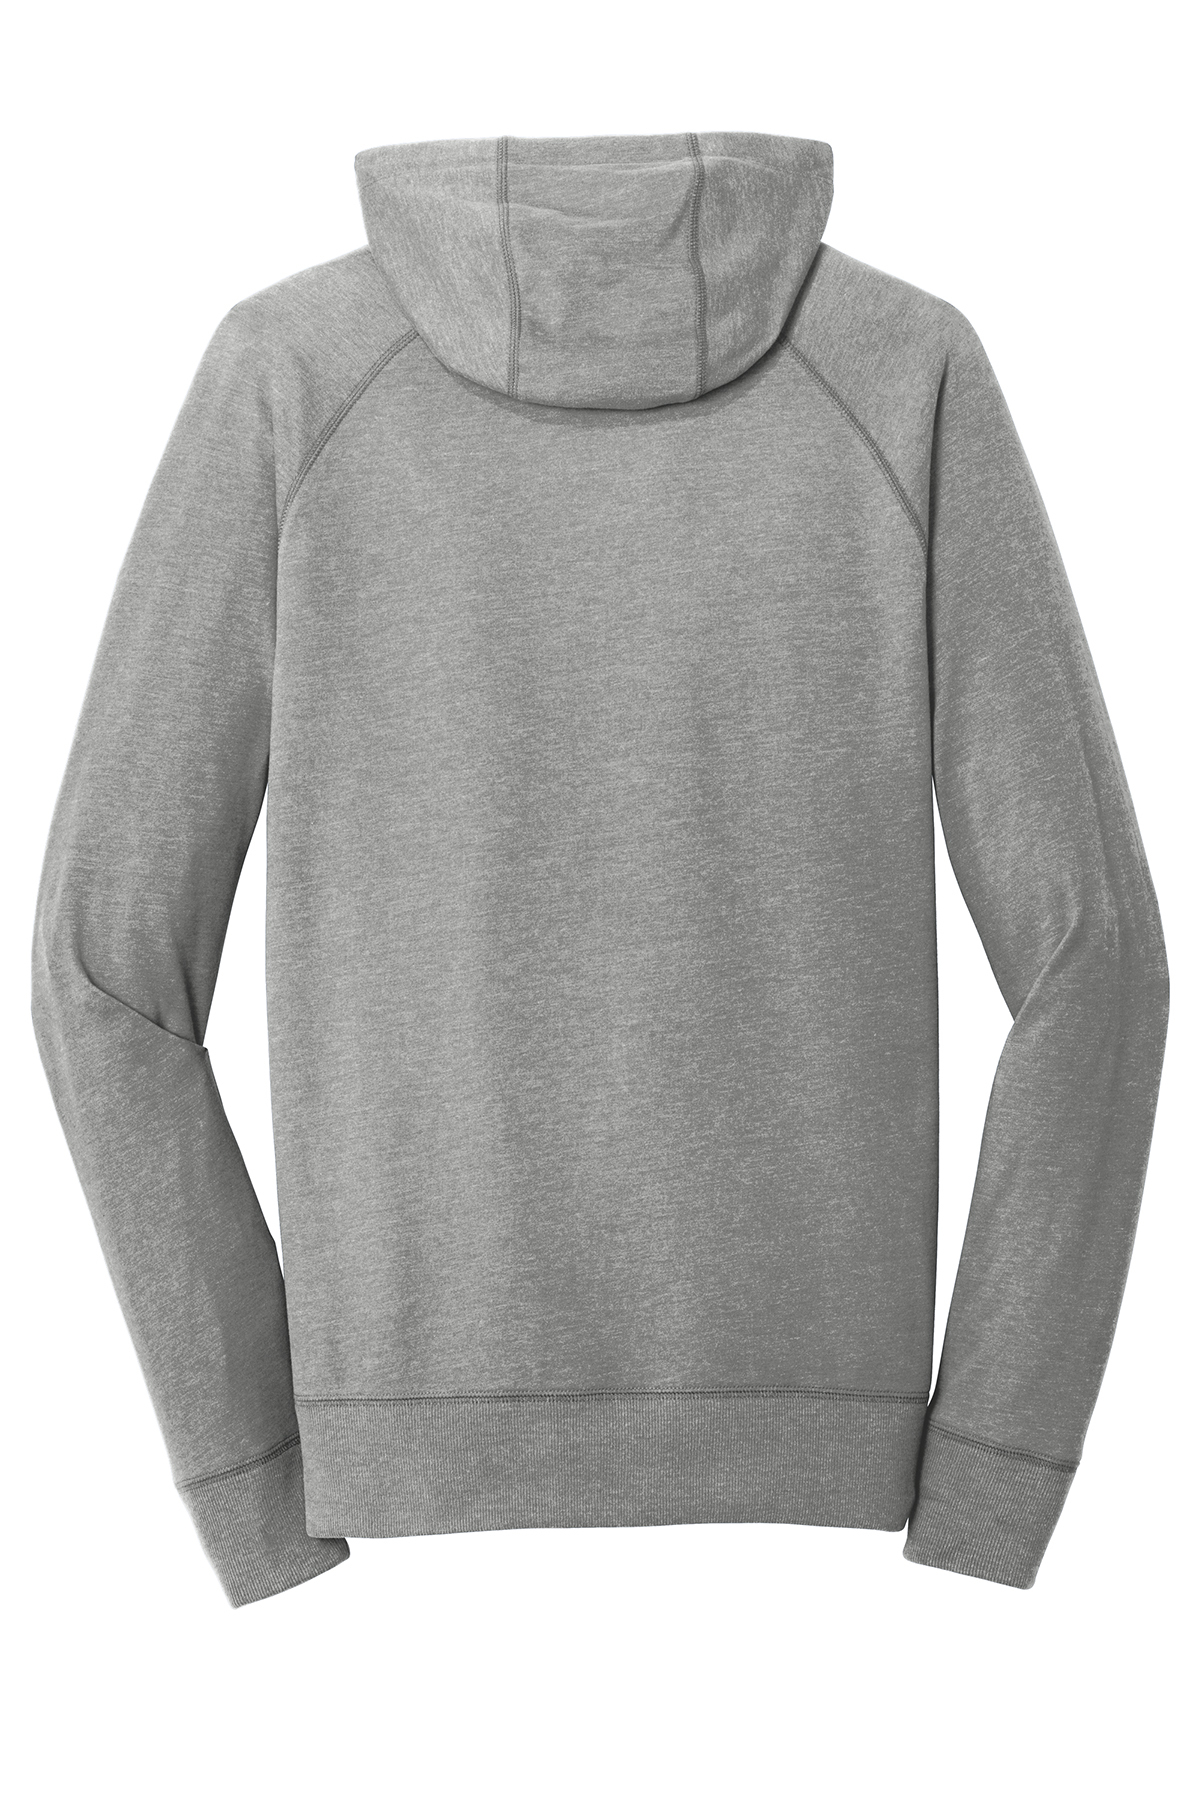 a29300a2598 ... New Era® Sueded Cotton Blend Full-Zip Hoodie. A maximum of 8 logos have  been uploaded. Please remove a logo from My Logos to continue